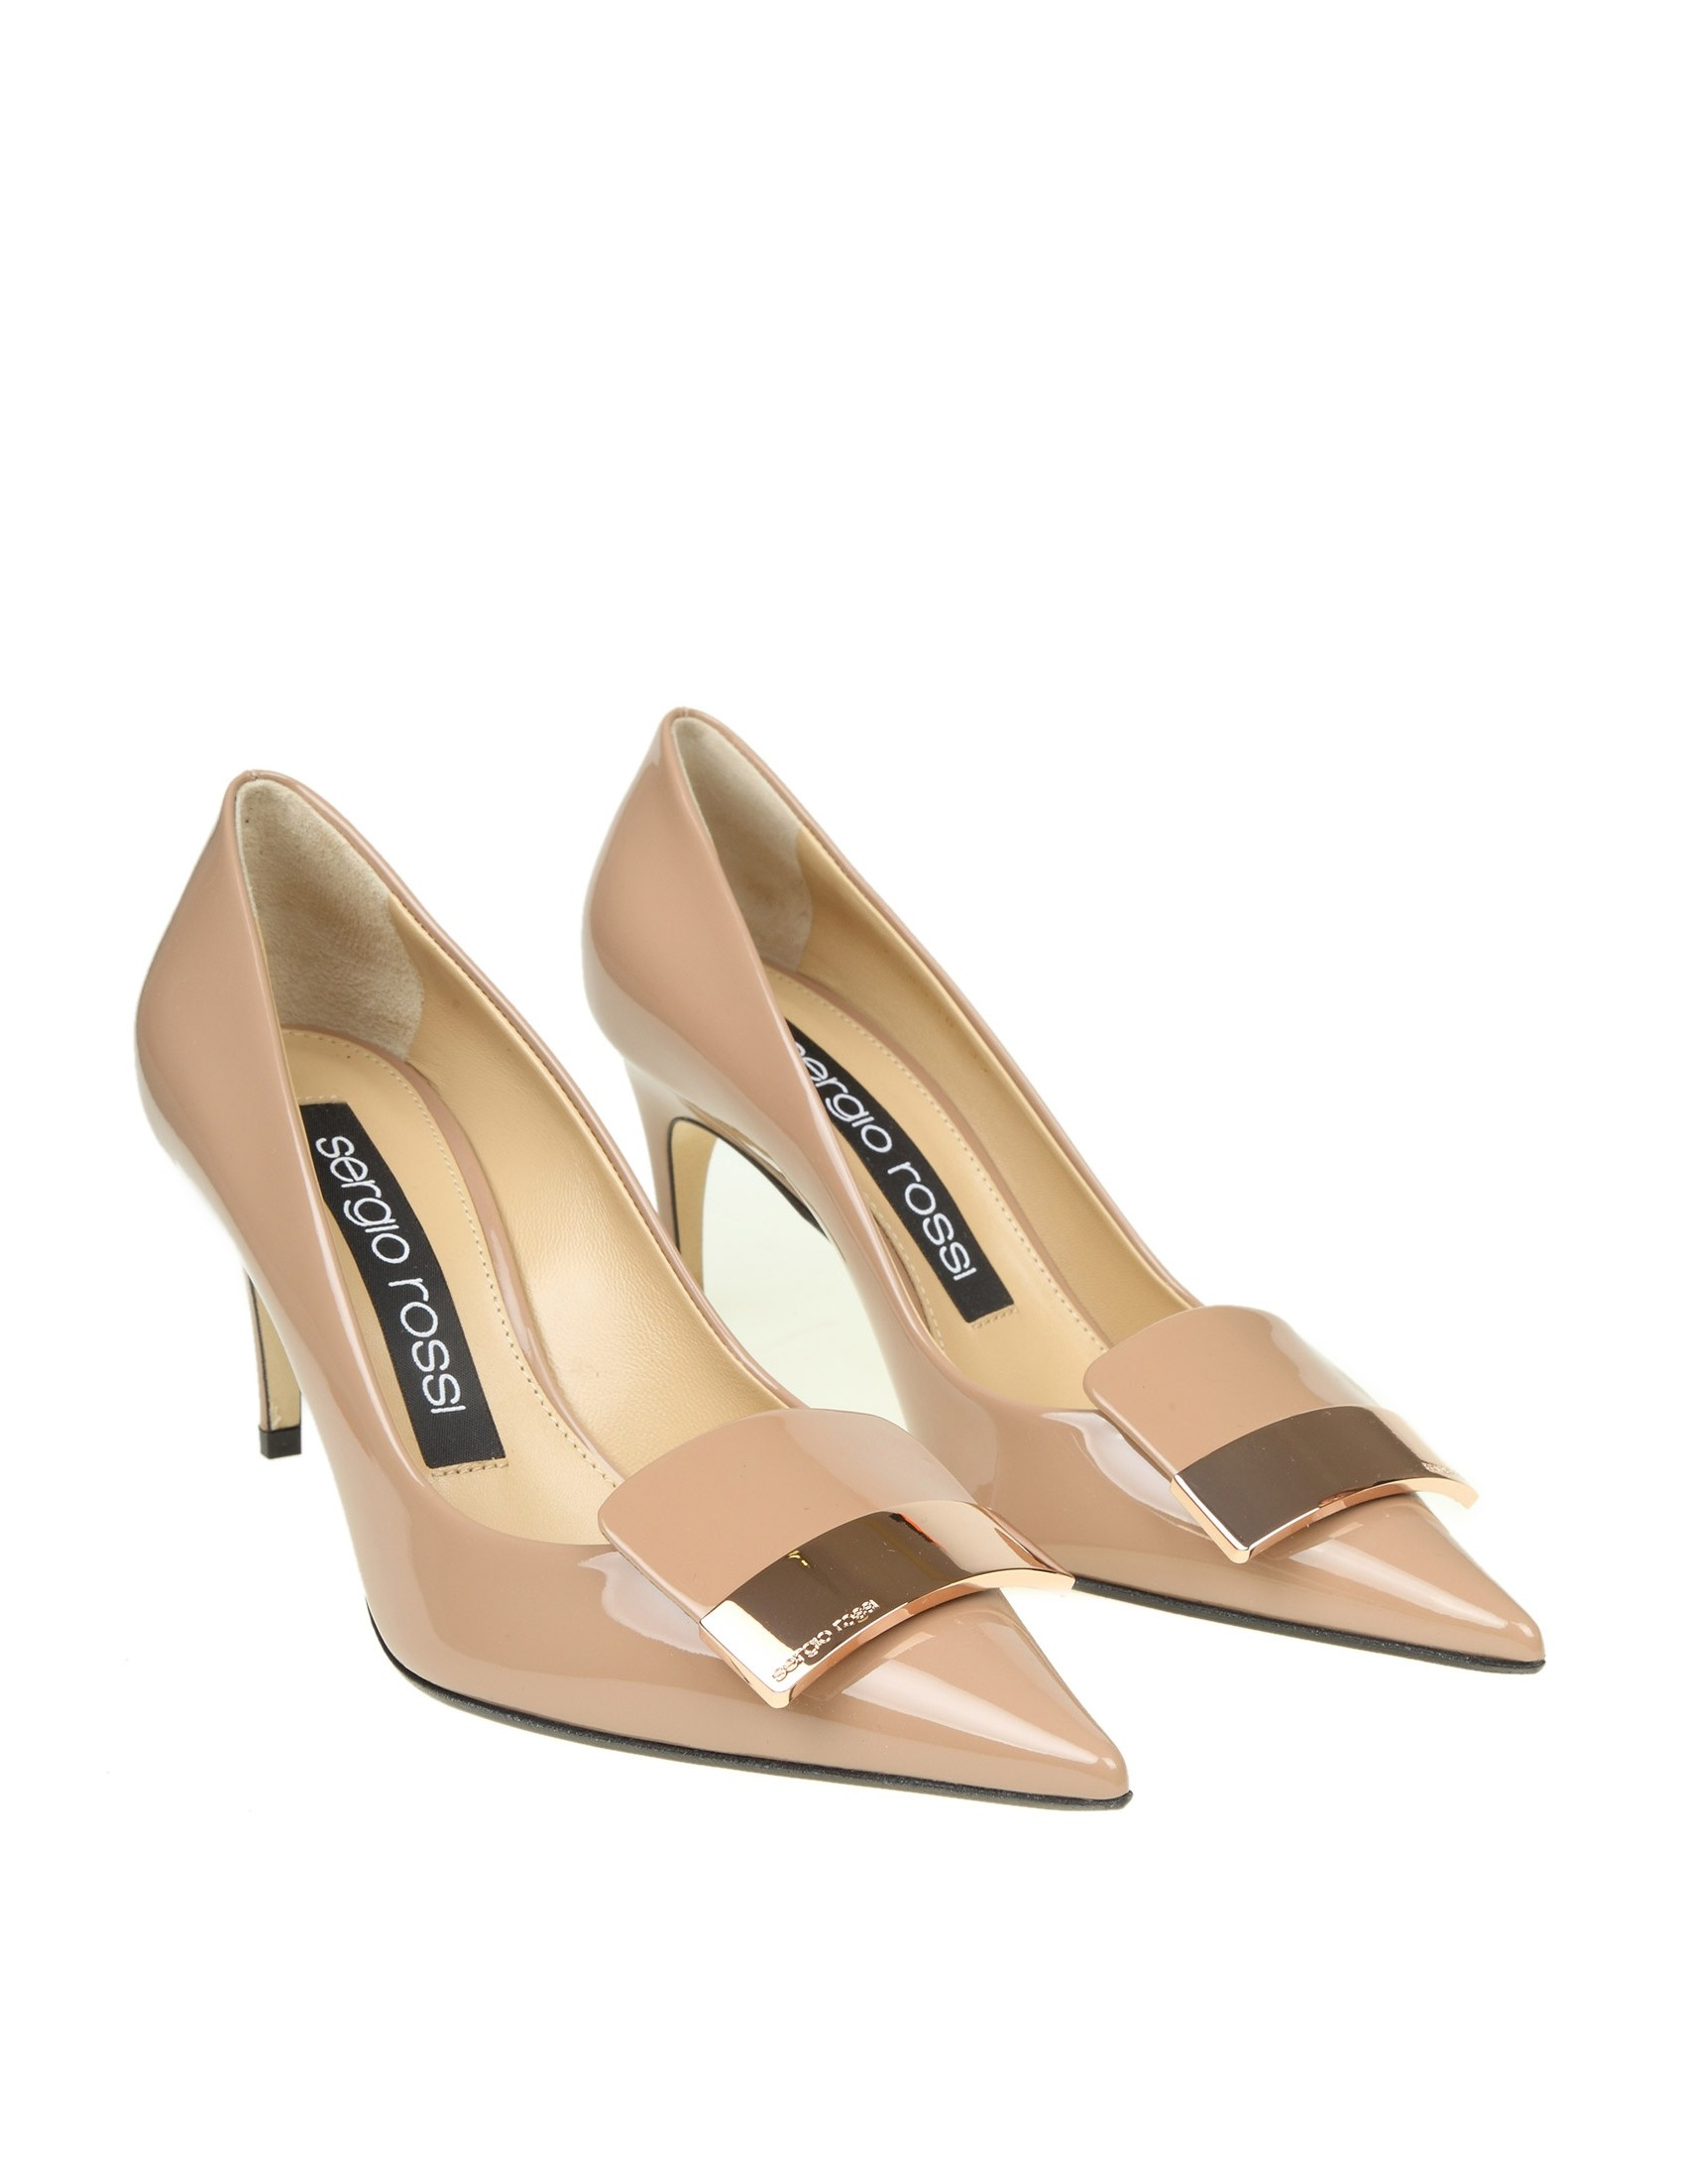 4f2f06650a58 SERGIO ROSSI DECOLLETE PAINT CALF LEATHER NUDE WOMAN NEW COLLECTION